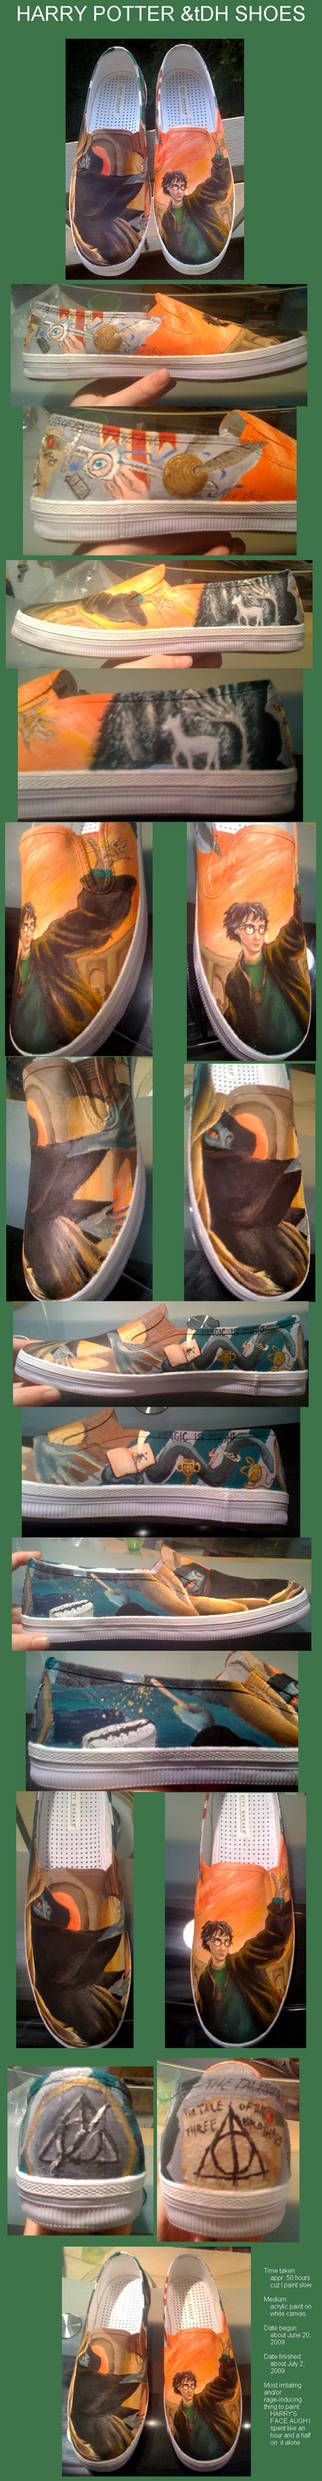 DH-inspired pottah shoes